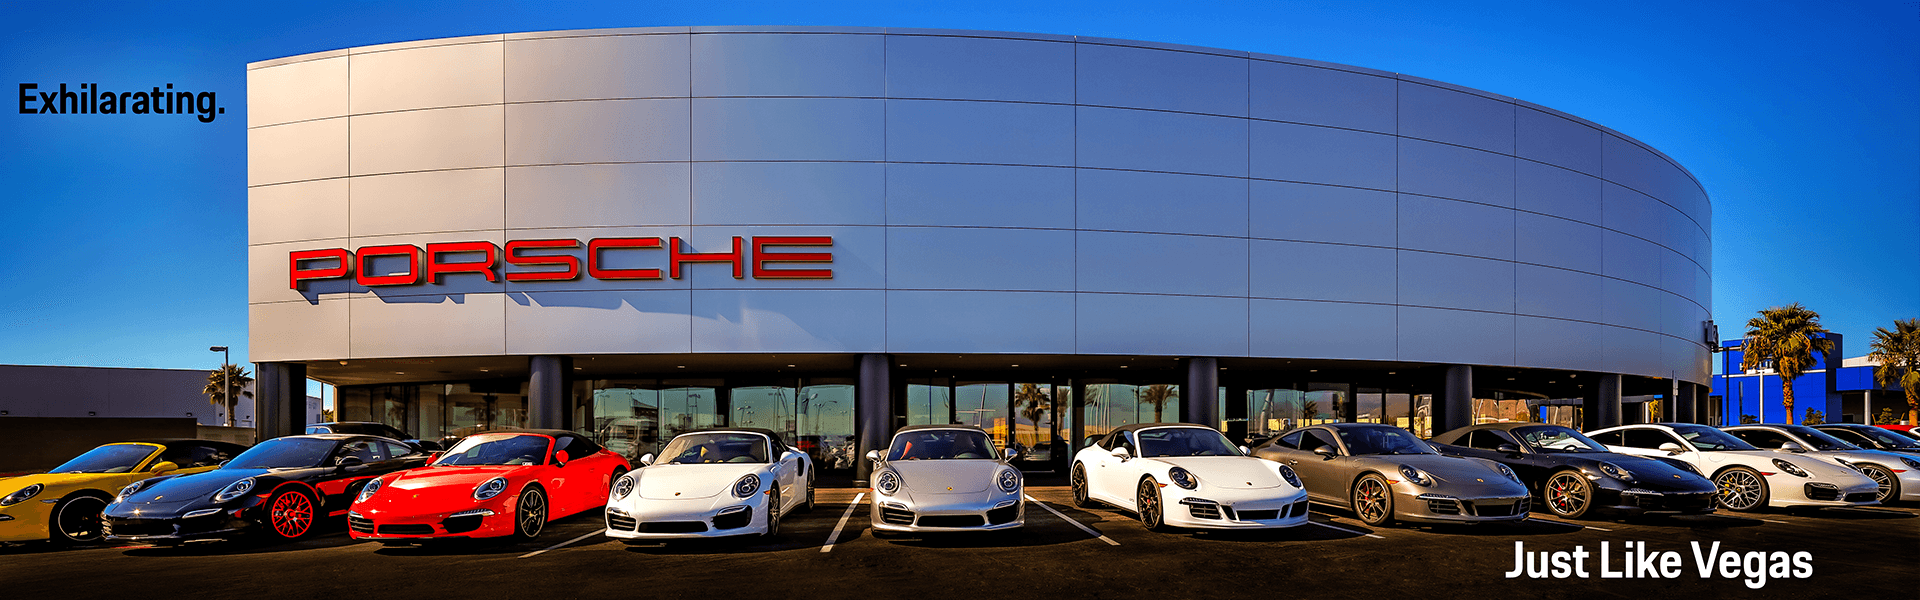 Porsche Dealer In Las Vegas Nv Used Cars Las Vegas Gaudin